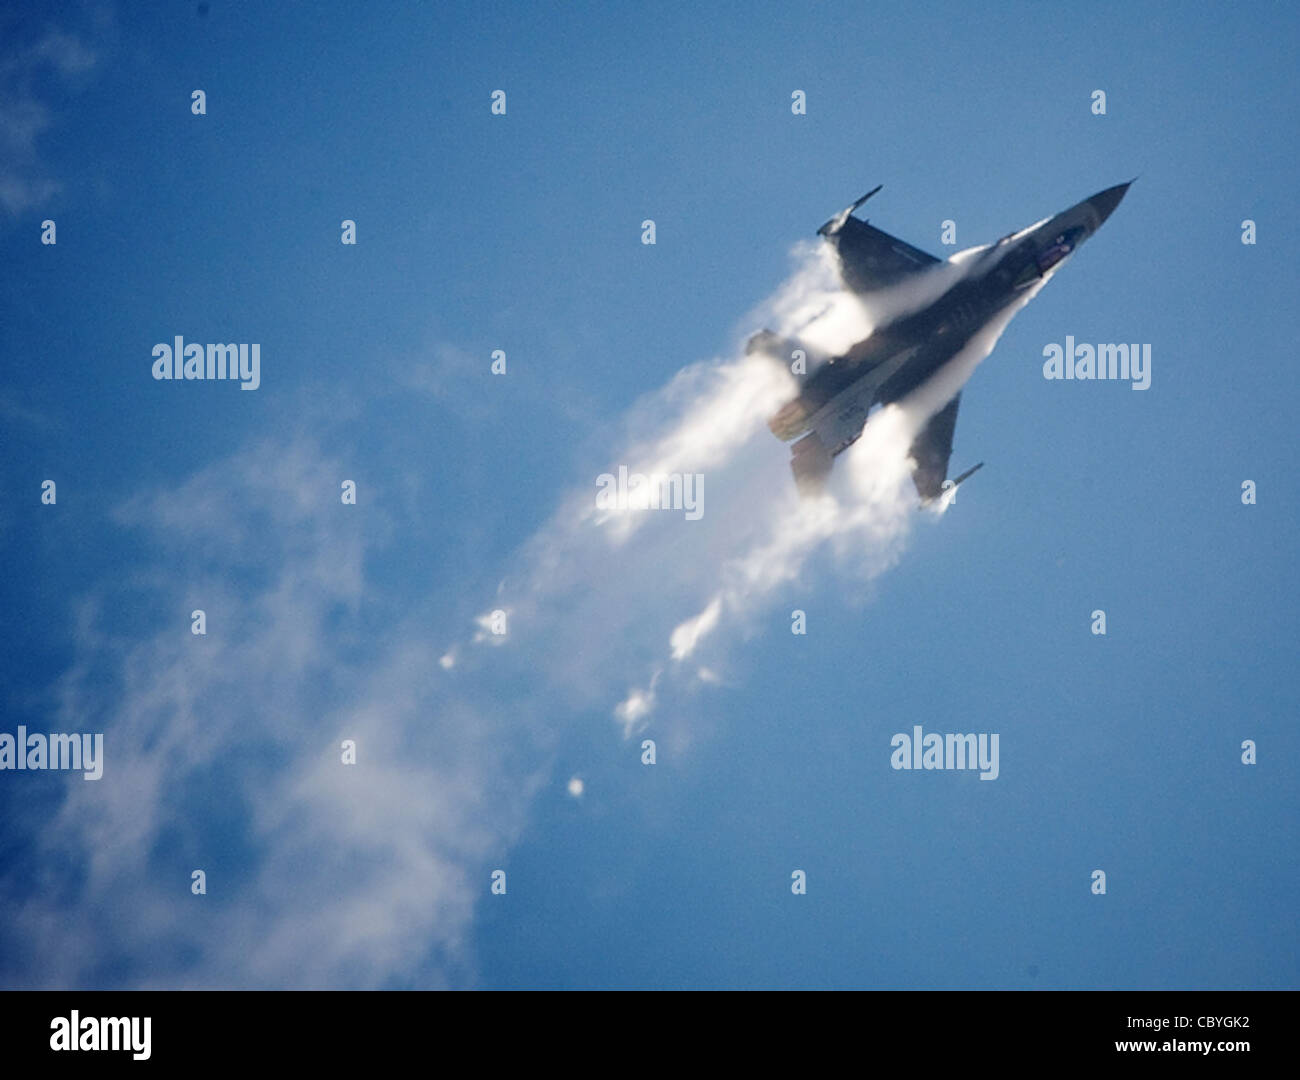 An F-16 Fighting Falcon generates vapor trails during it's high performance demonstration for AirFest 2008 at - Stock Image